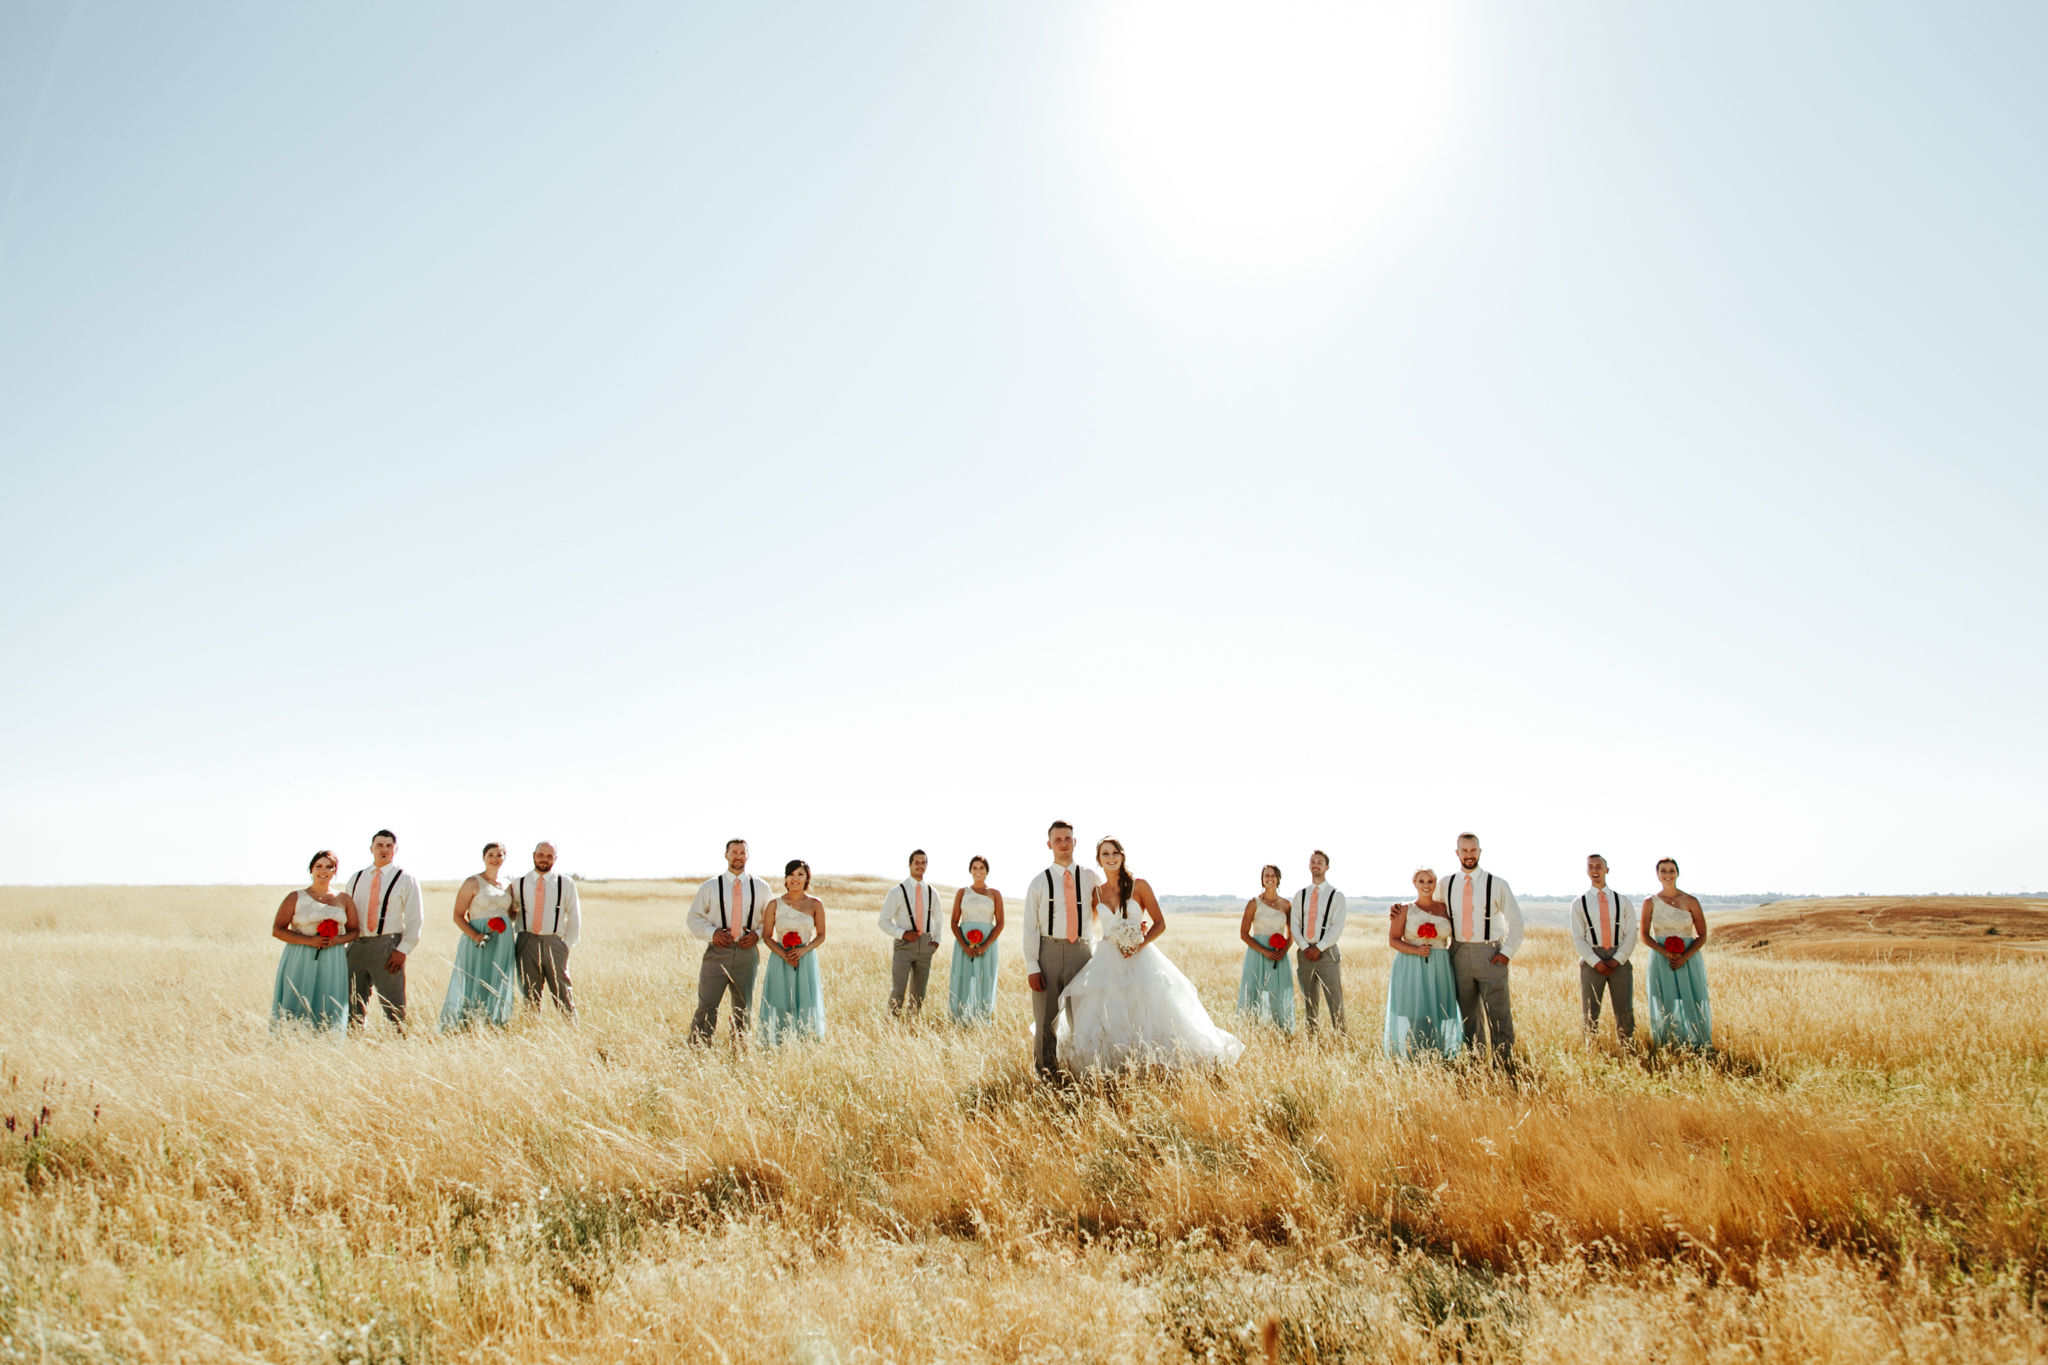 lethbridge-wedding-photography-love-and-be-loved-photographer-sean-sharla-henderson-lake-wedding-image-picture-photo-136.jpg